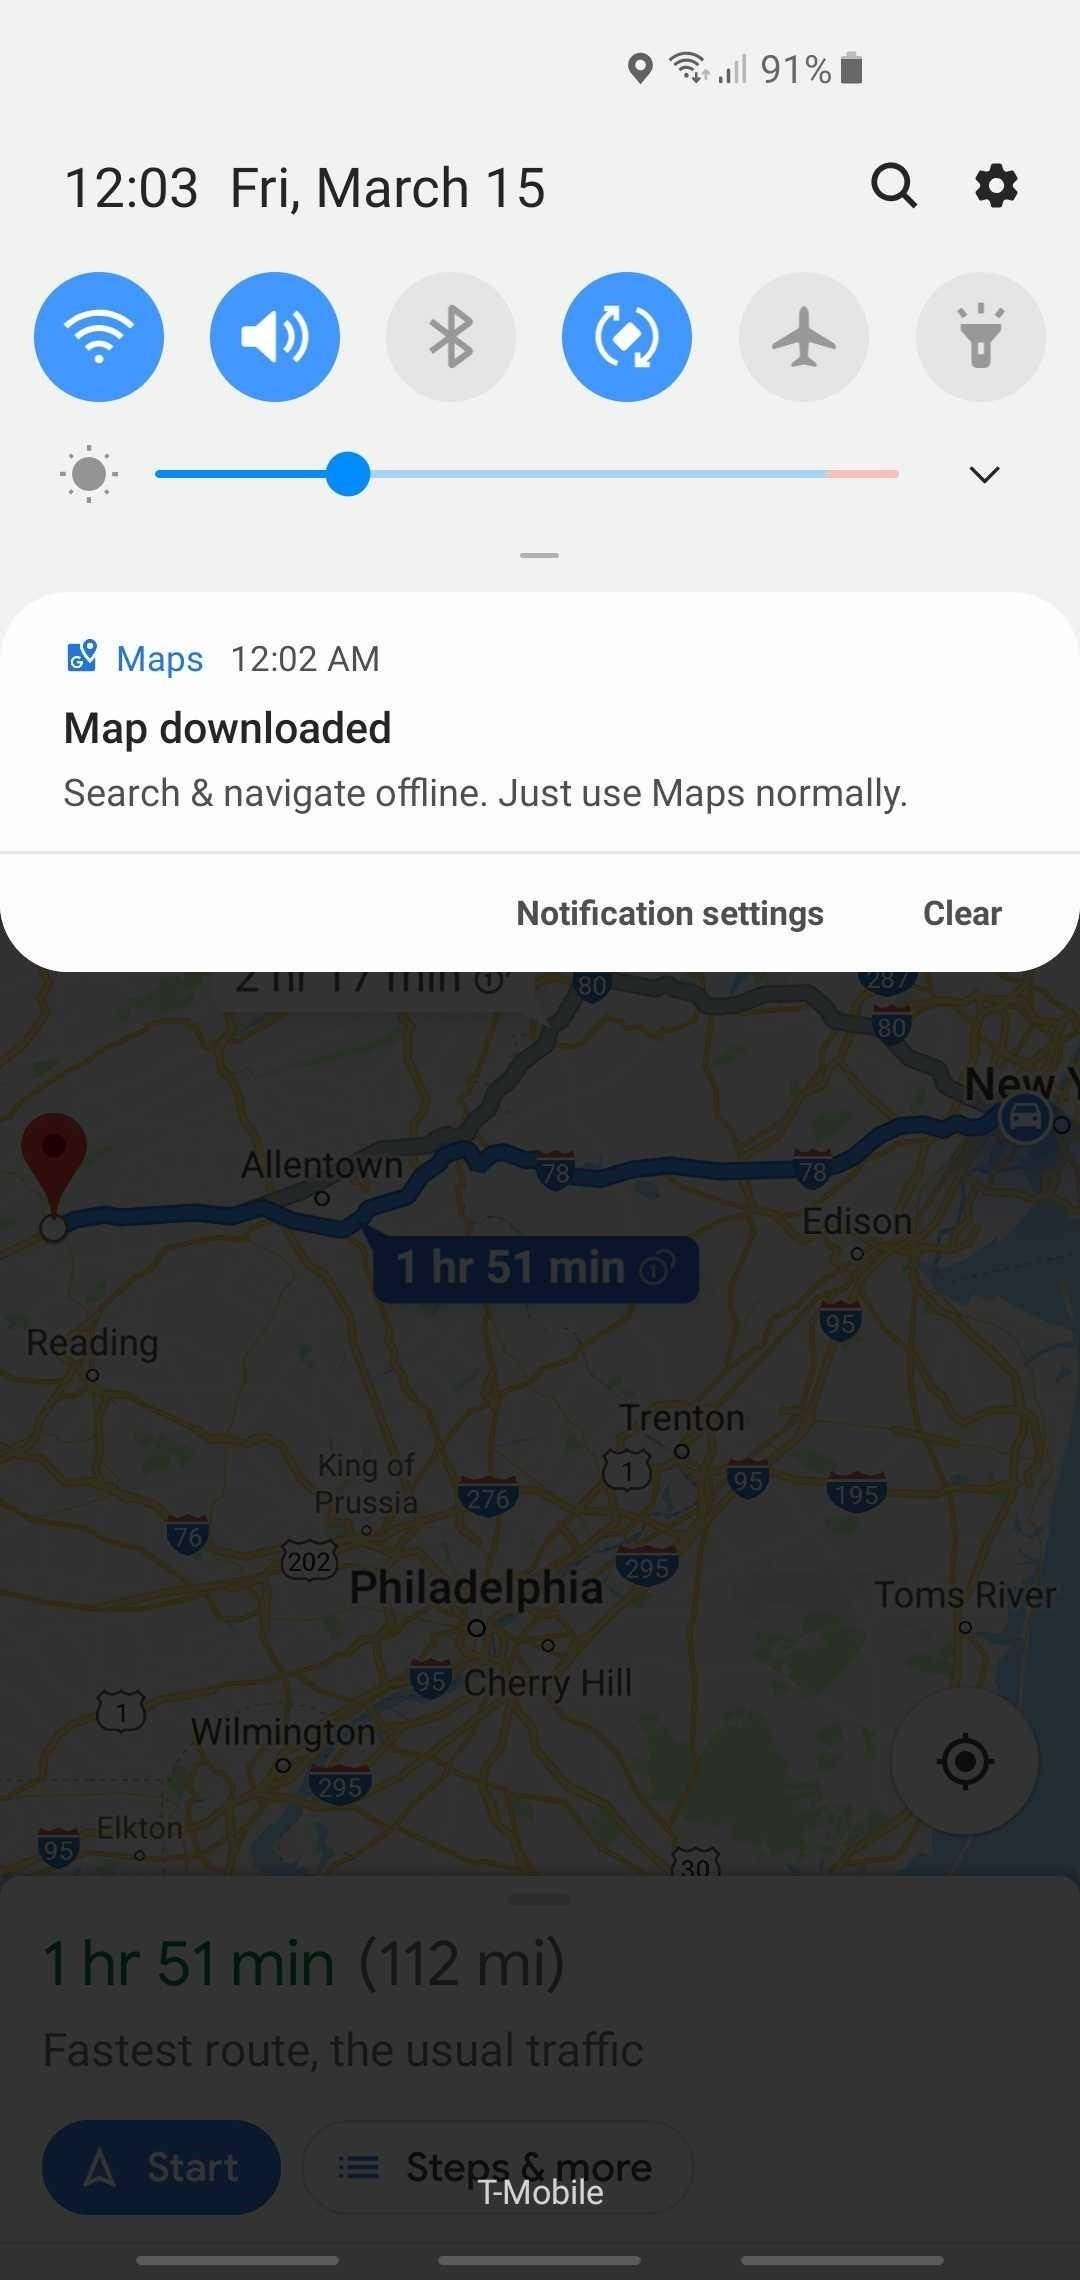 Offline Map Of New York For Android.How To Download Entire Maps For Offline Use In Google Maps